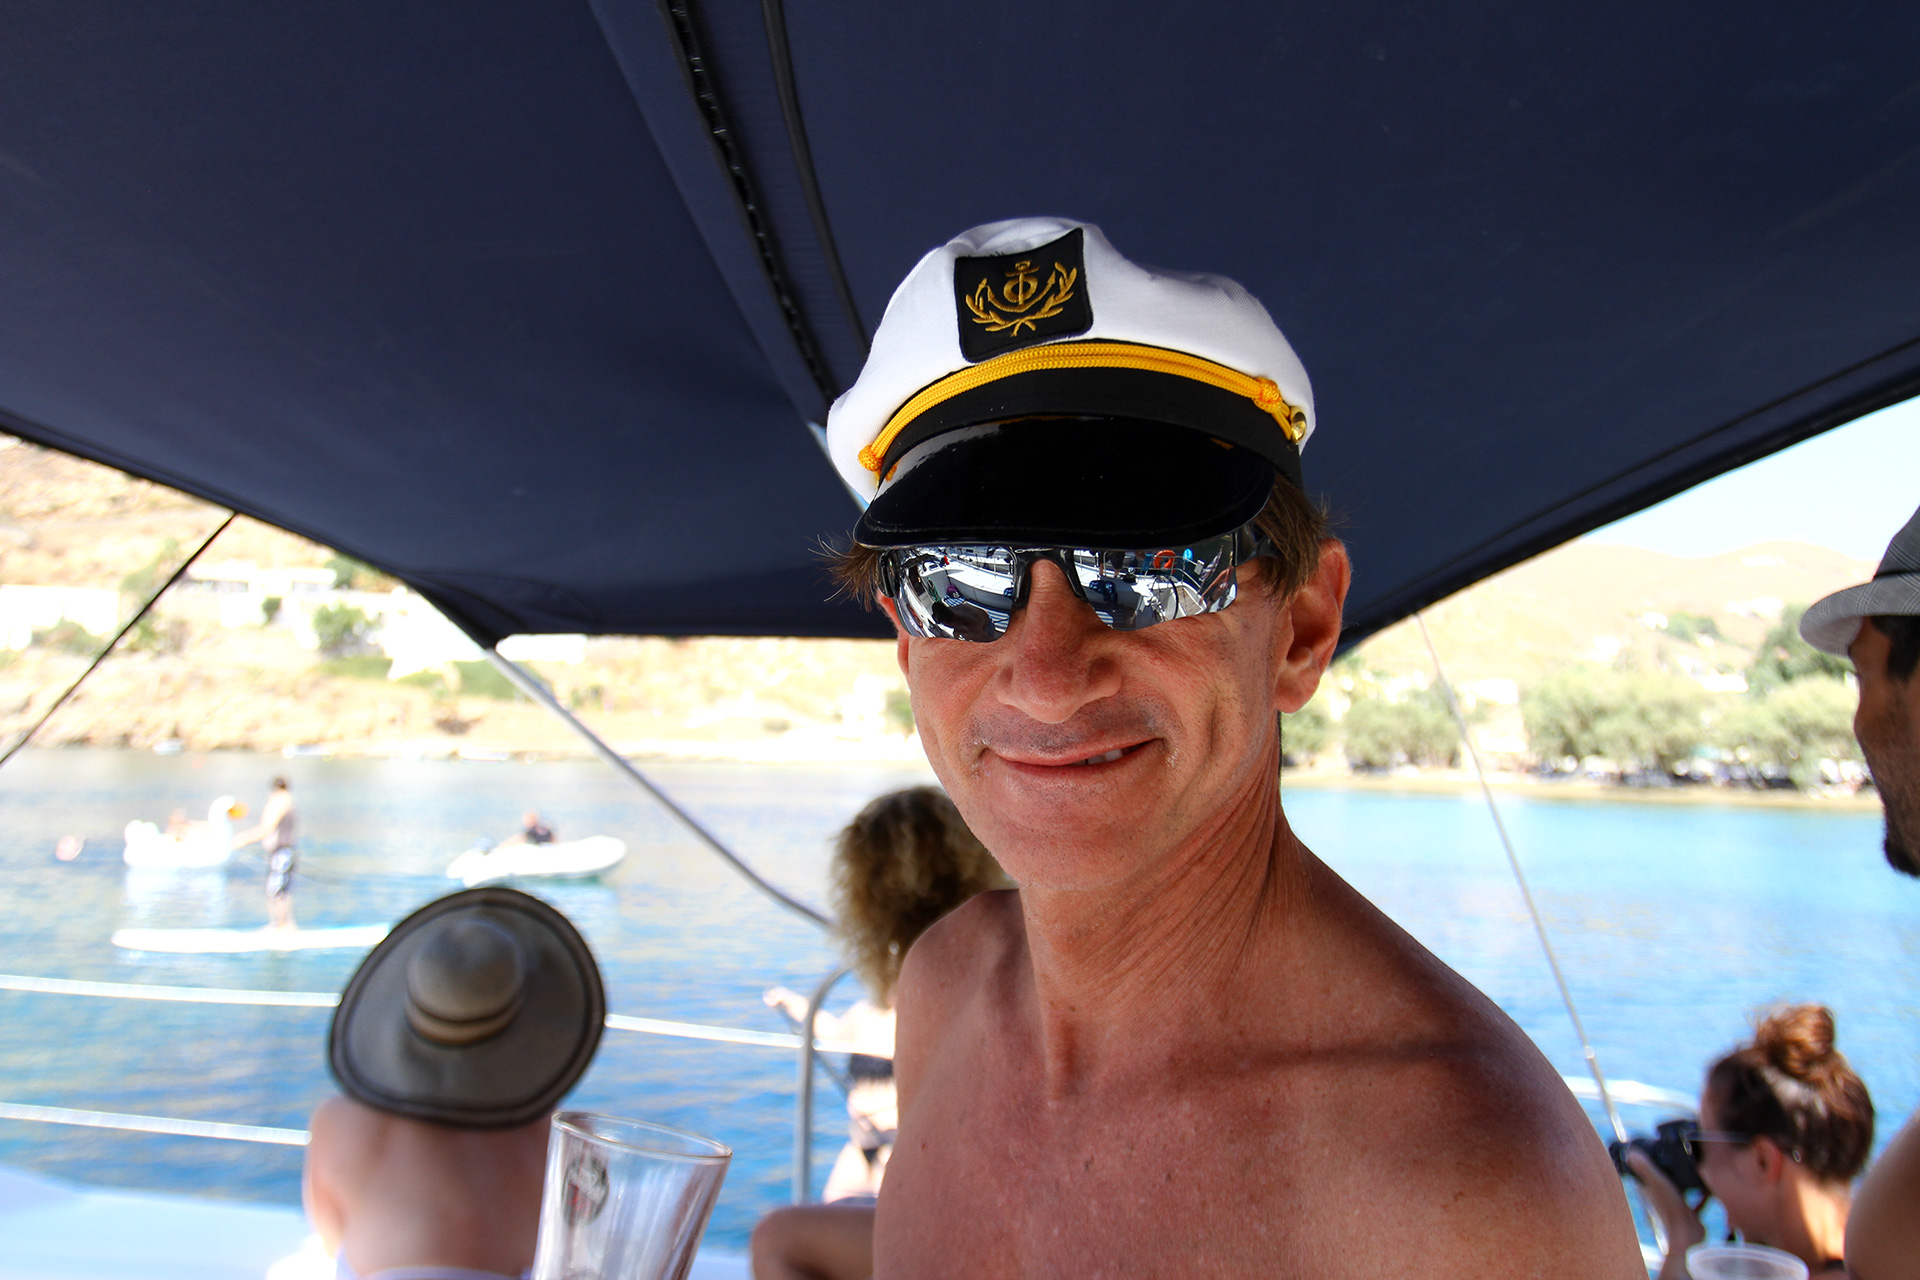 Friends - cause everyone gets to be the captain. Ahoy to Jorge from #florida who kept the boat en ro